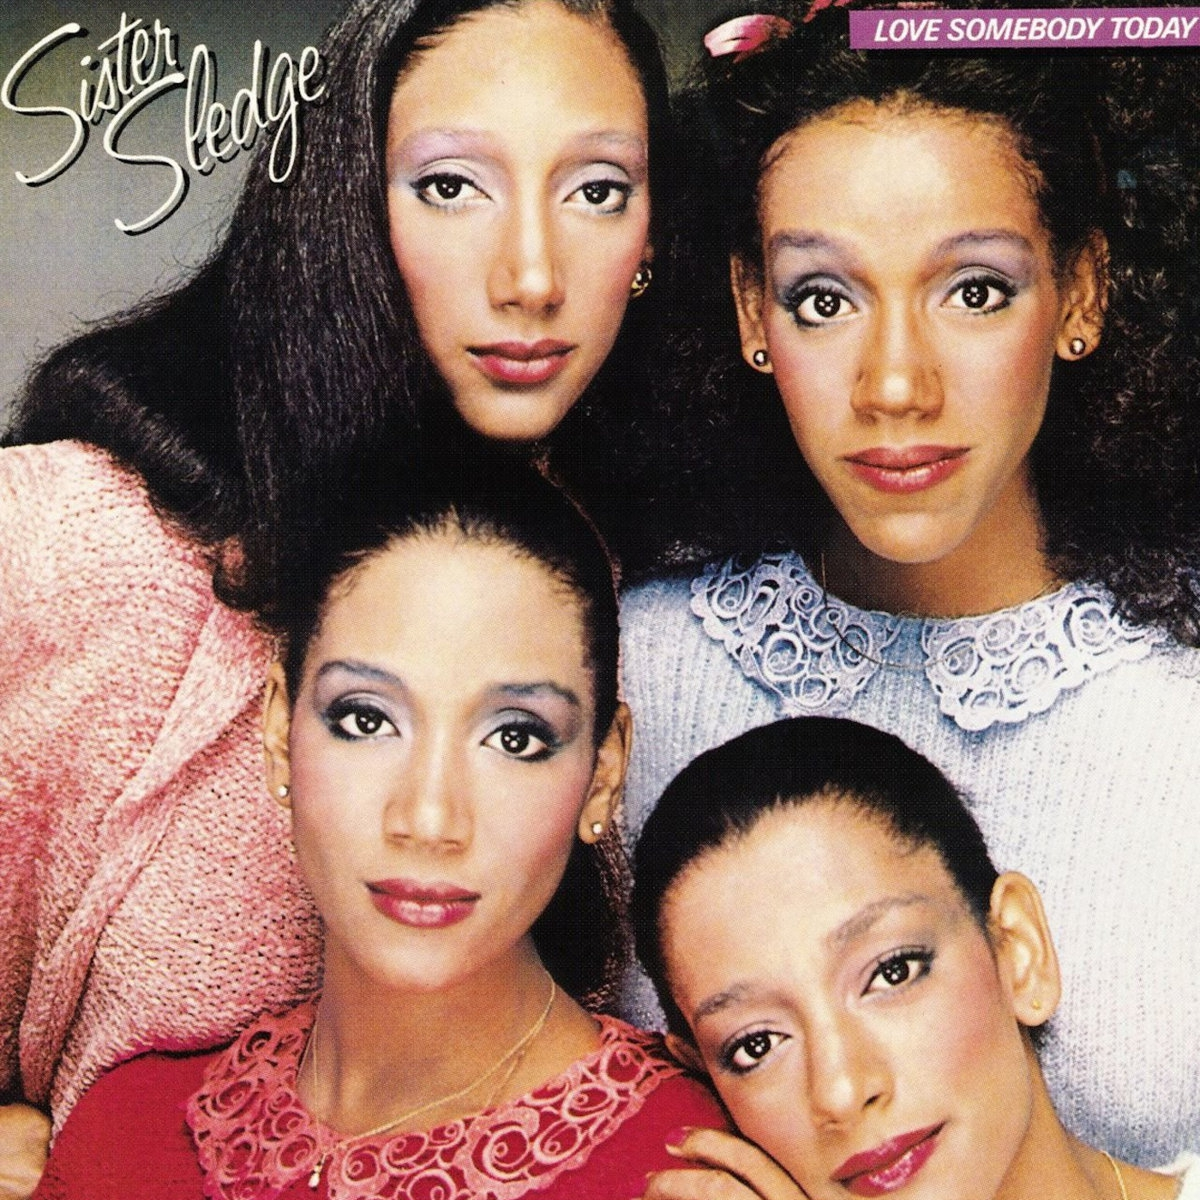 Sister Sledge - Got To Love Somebody (FunkyDeps Edit)